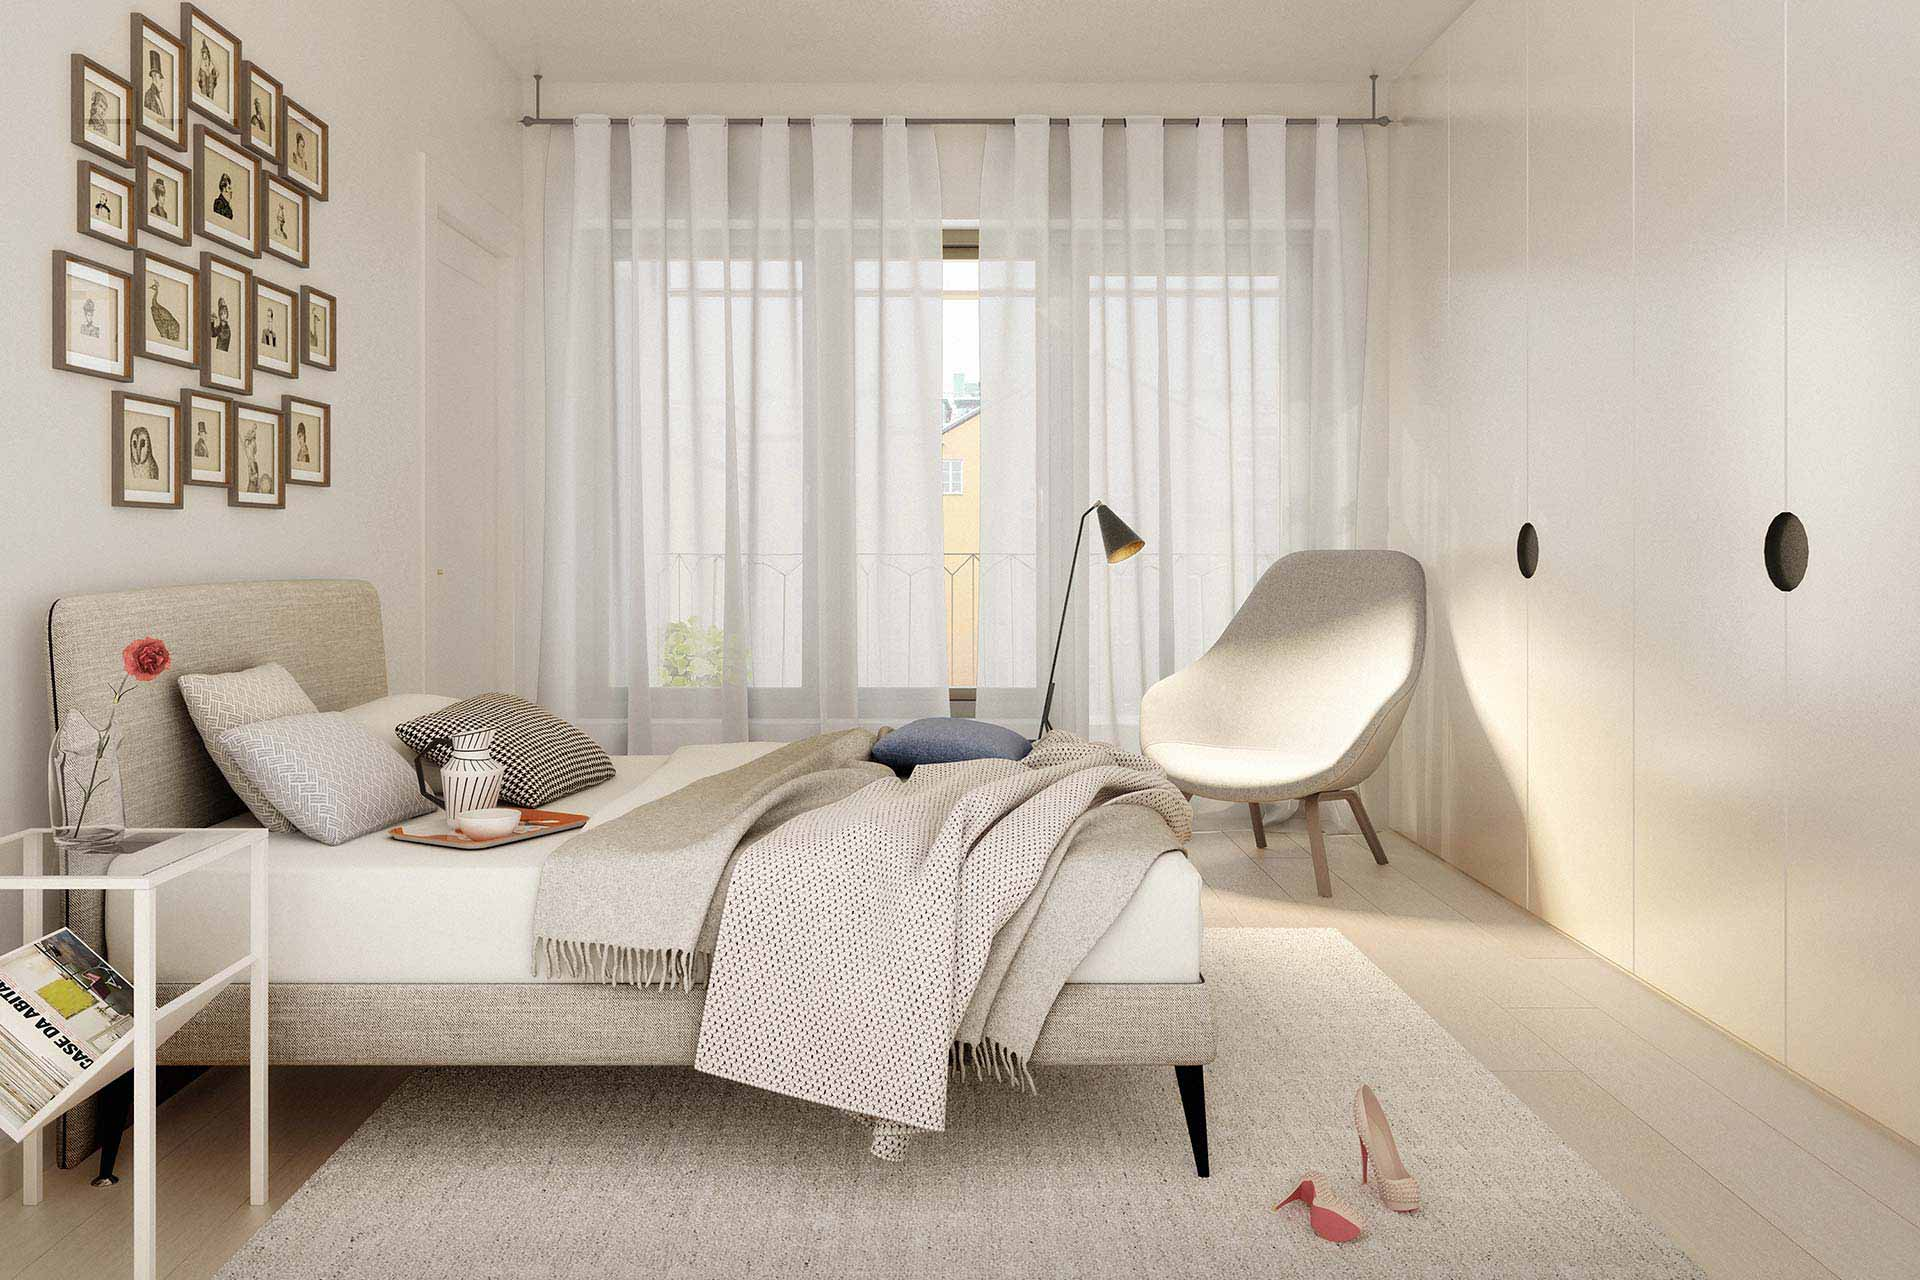 Bedroom rendering of Corner House in Stockholm Sweden